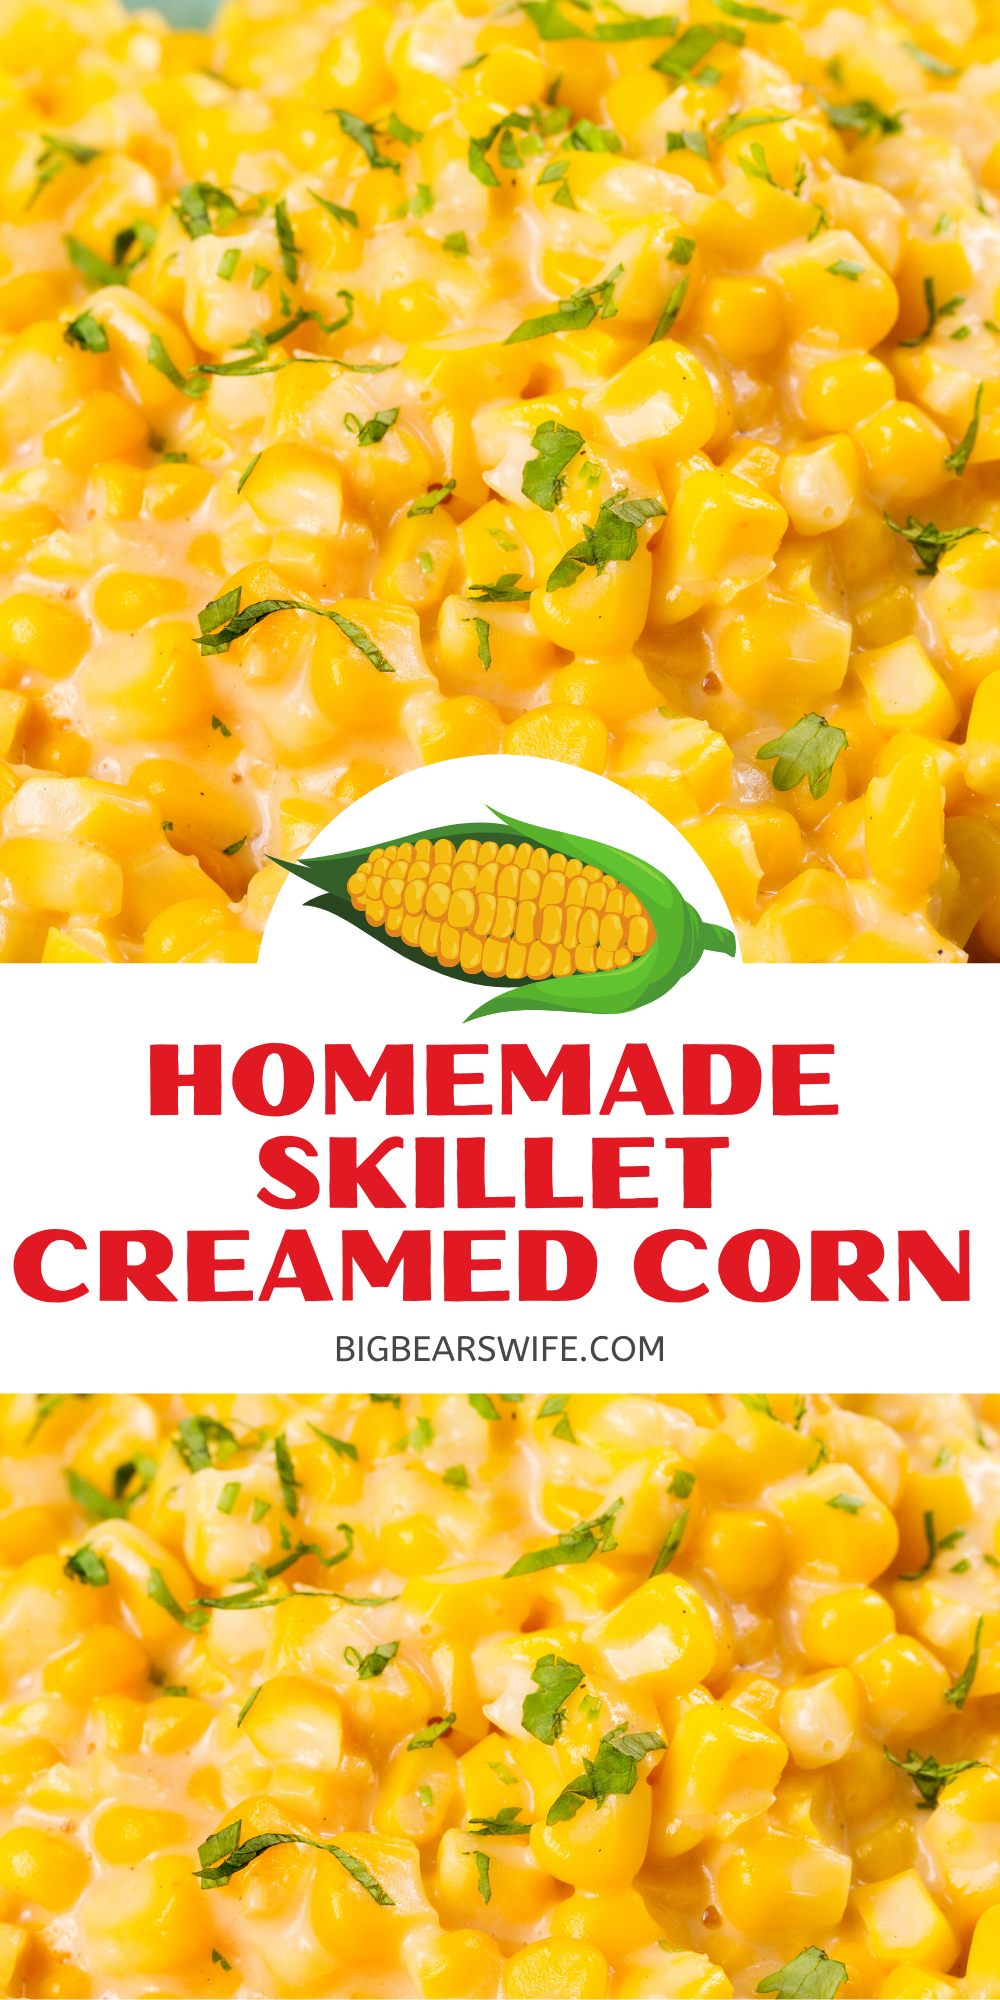 This recipe for Homemade Skillet Creamed Corn is so delicious and it's pretty easy to put together. Homemade Skillet Creamed Corn is great for a side dish for Thanksgiving, Corn Chowder or my favorite Creamed Corn Mac and Cheese!  via @bigbearswife